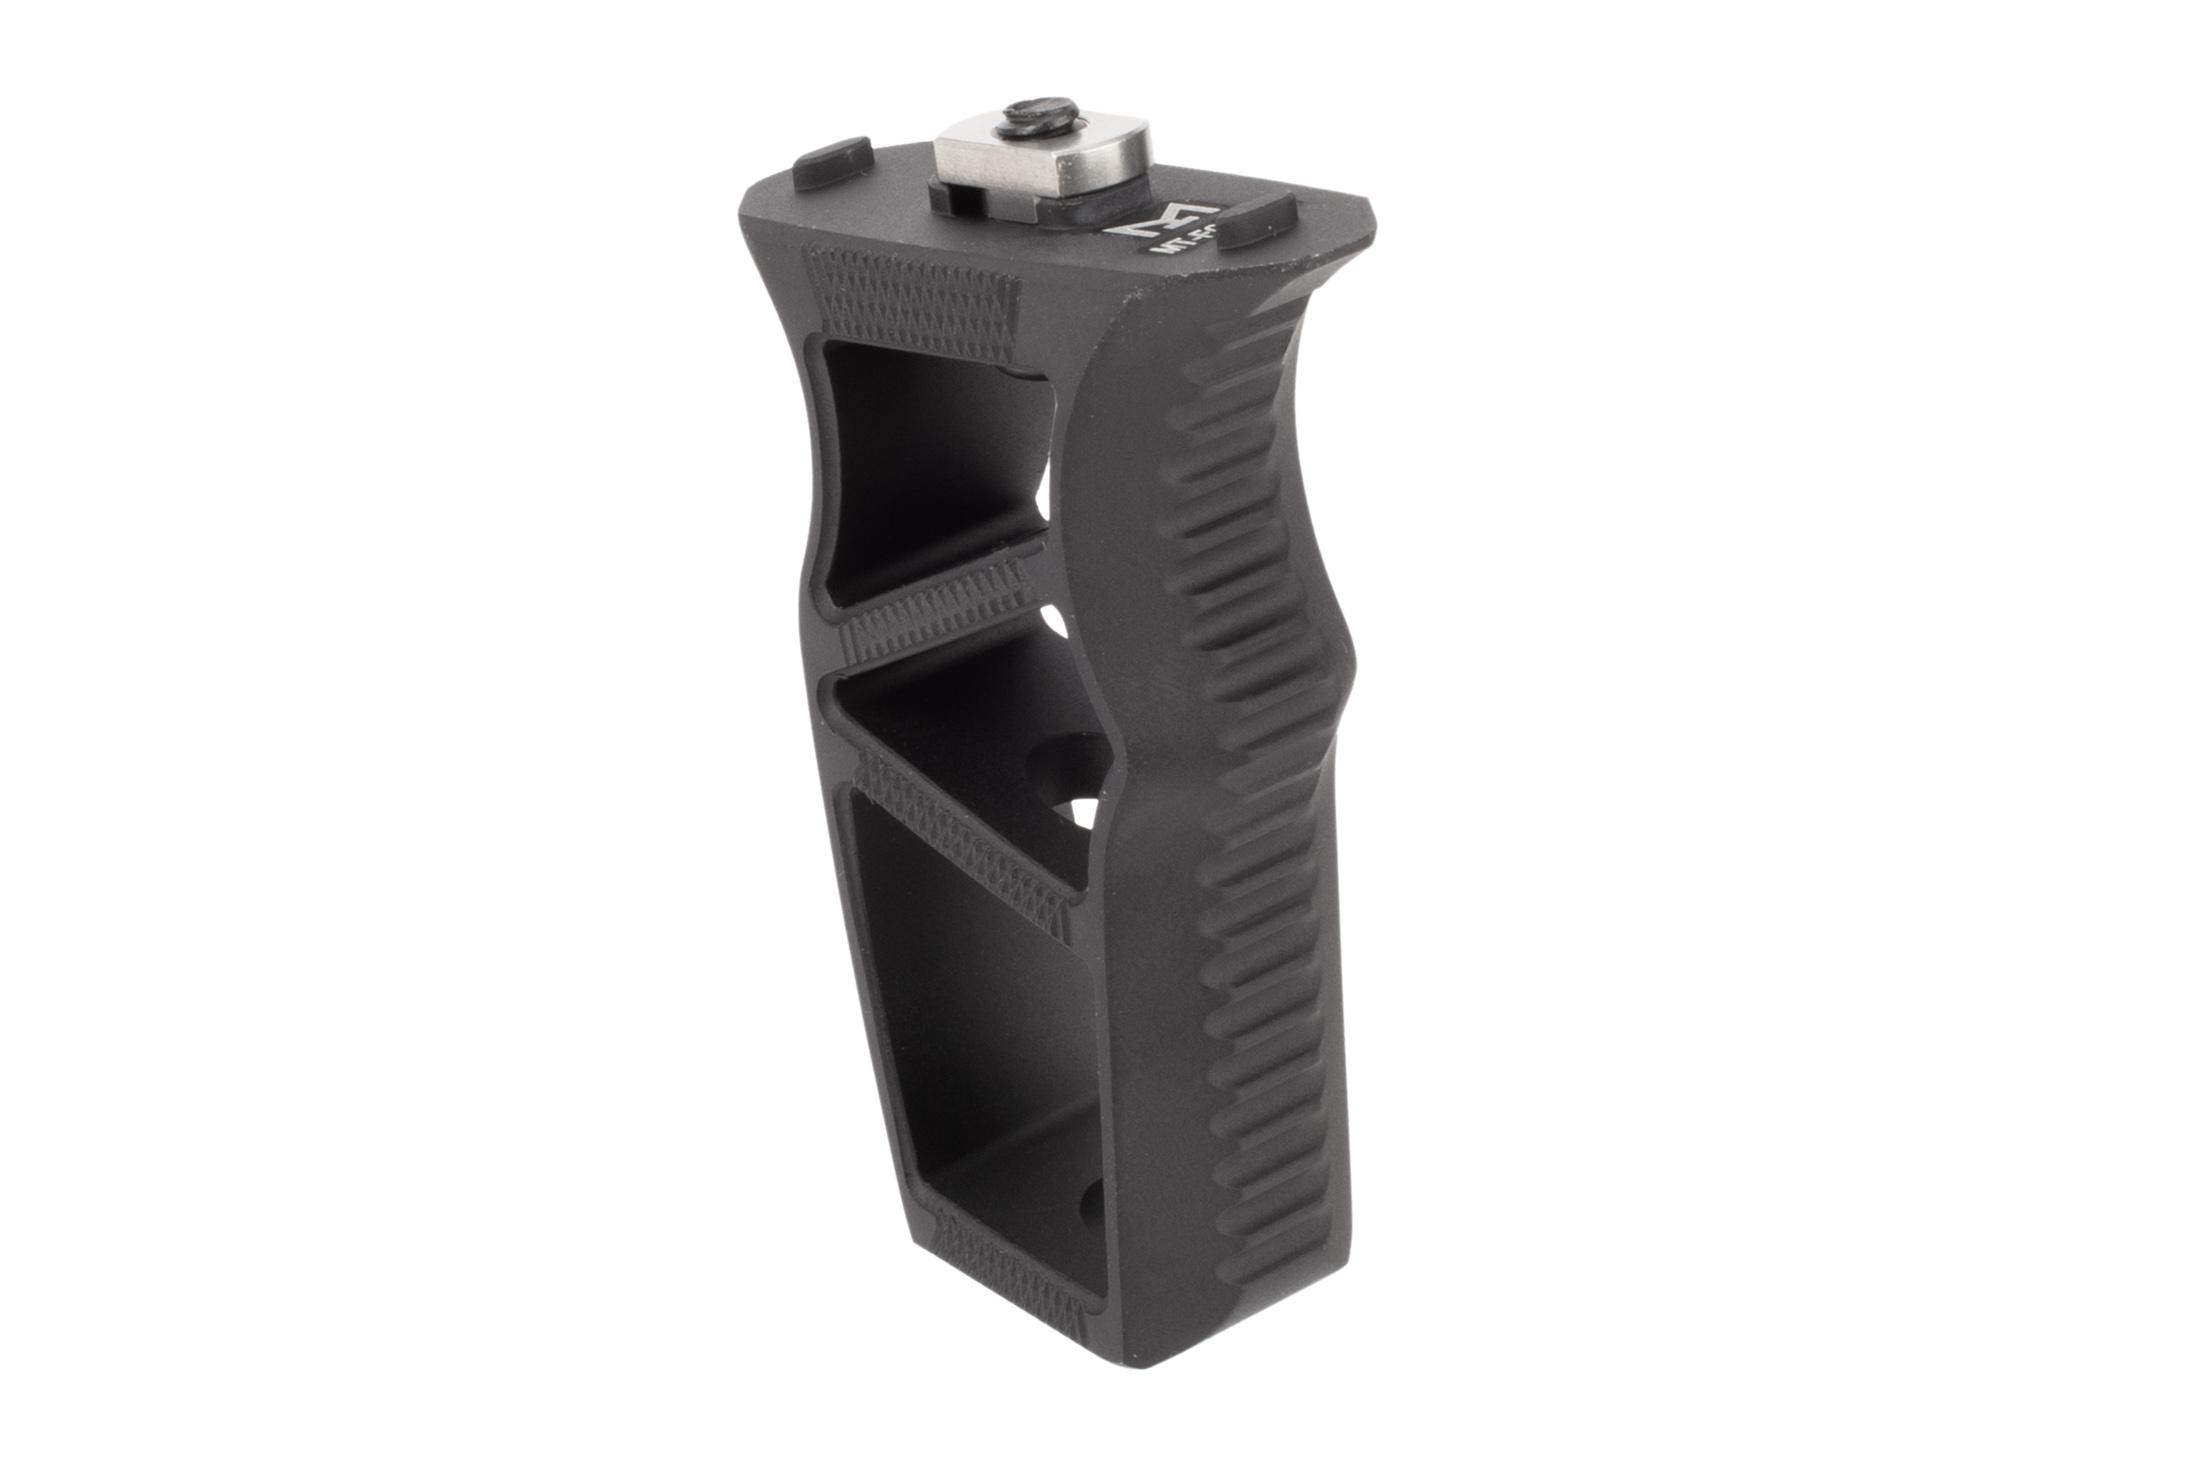 Leapers UTG Ultra Slim M-LOK foregrip with black anodized finish